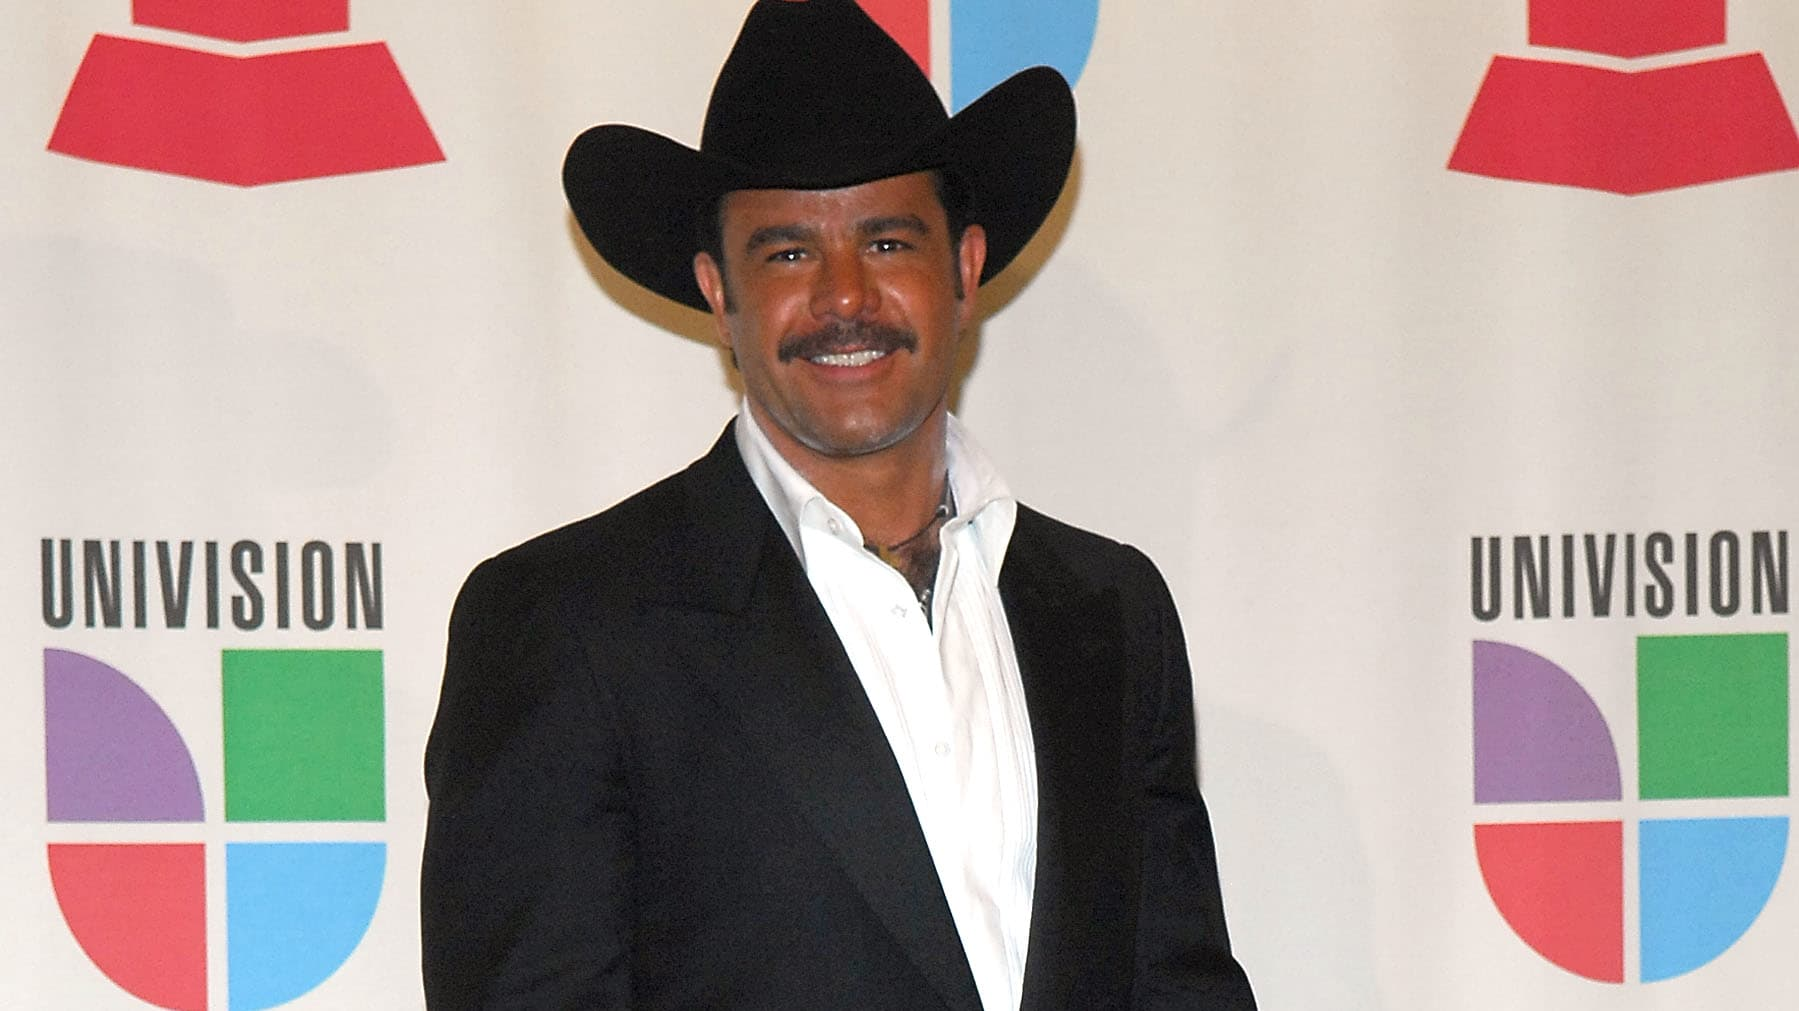 LAS VEGAS - NOVEMBER 08:  Singer Eduardo Capetillo poses in the press room during the 8th annual latin GRAMMY awards held at the Mandalay Bay Events Center on November 8, 2007 in Las Vegas, Nevada.  (Photo by Gustavo Caballero/Getty Images)